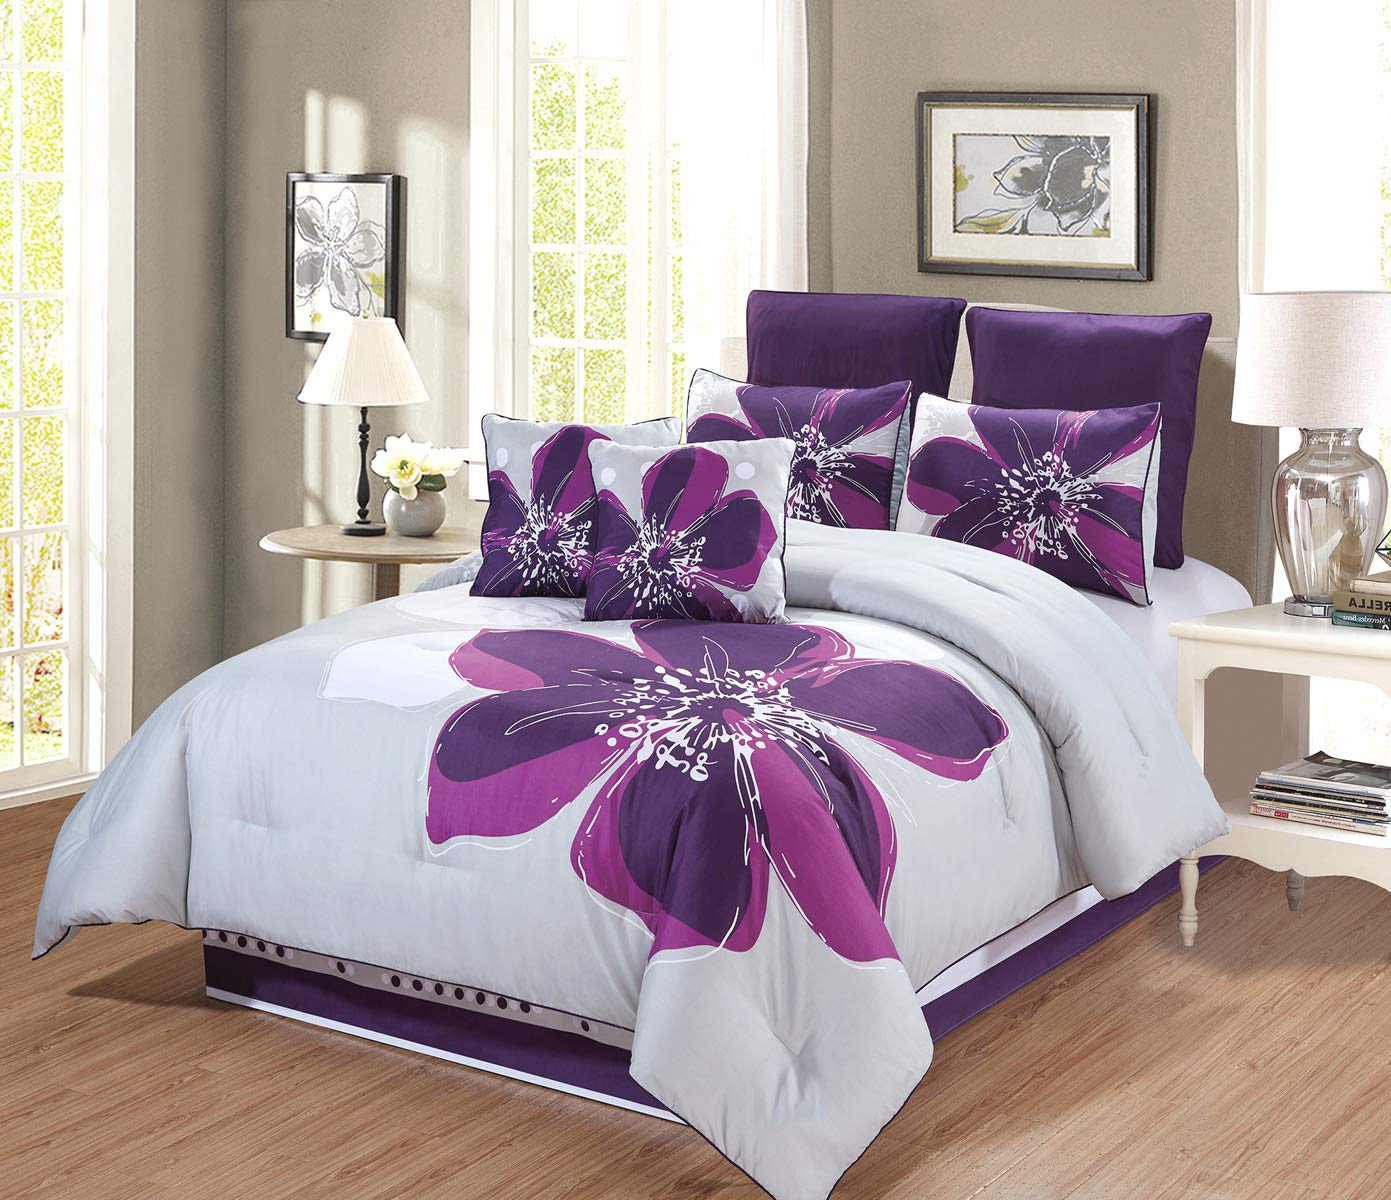 GrandLinen 8 - Piece Grey, Purple, Dark Purple Floral Comforter Set (Double) Full Size Bedding + Accent Pillows